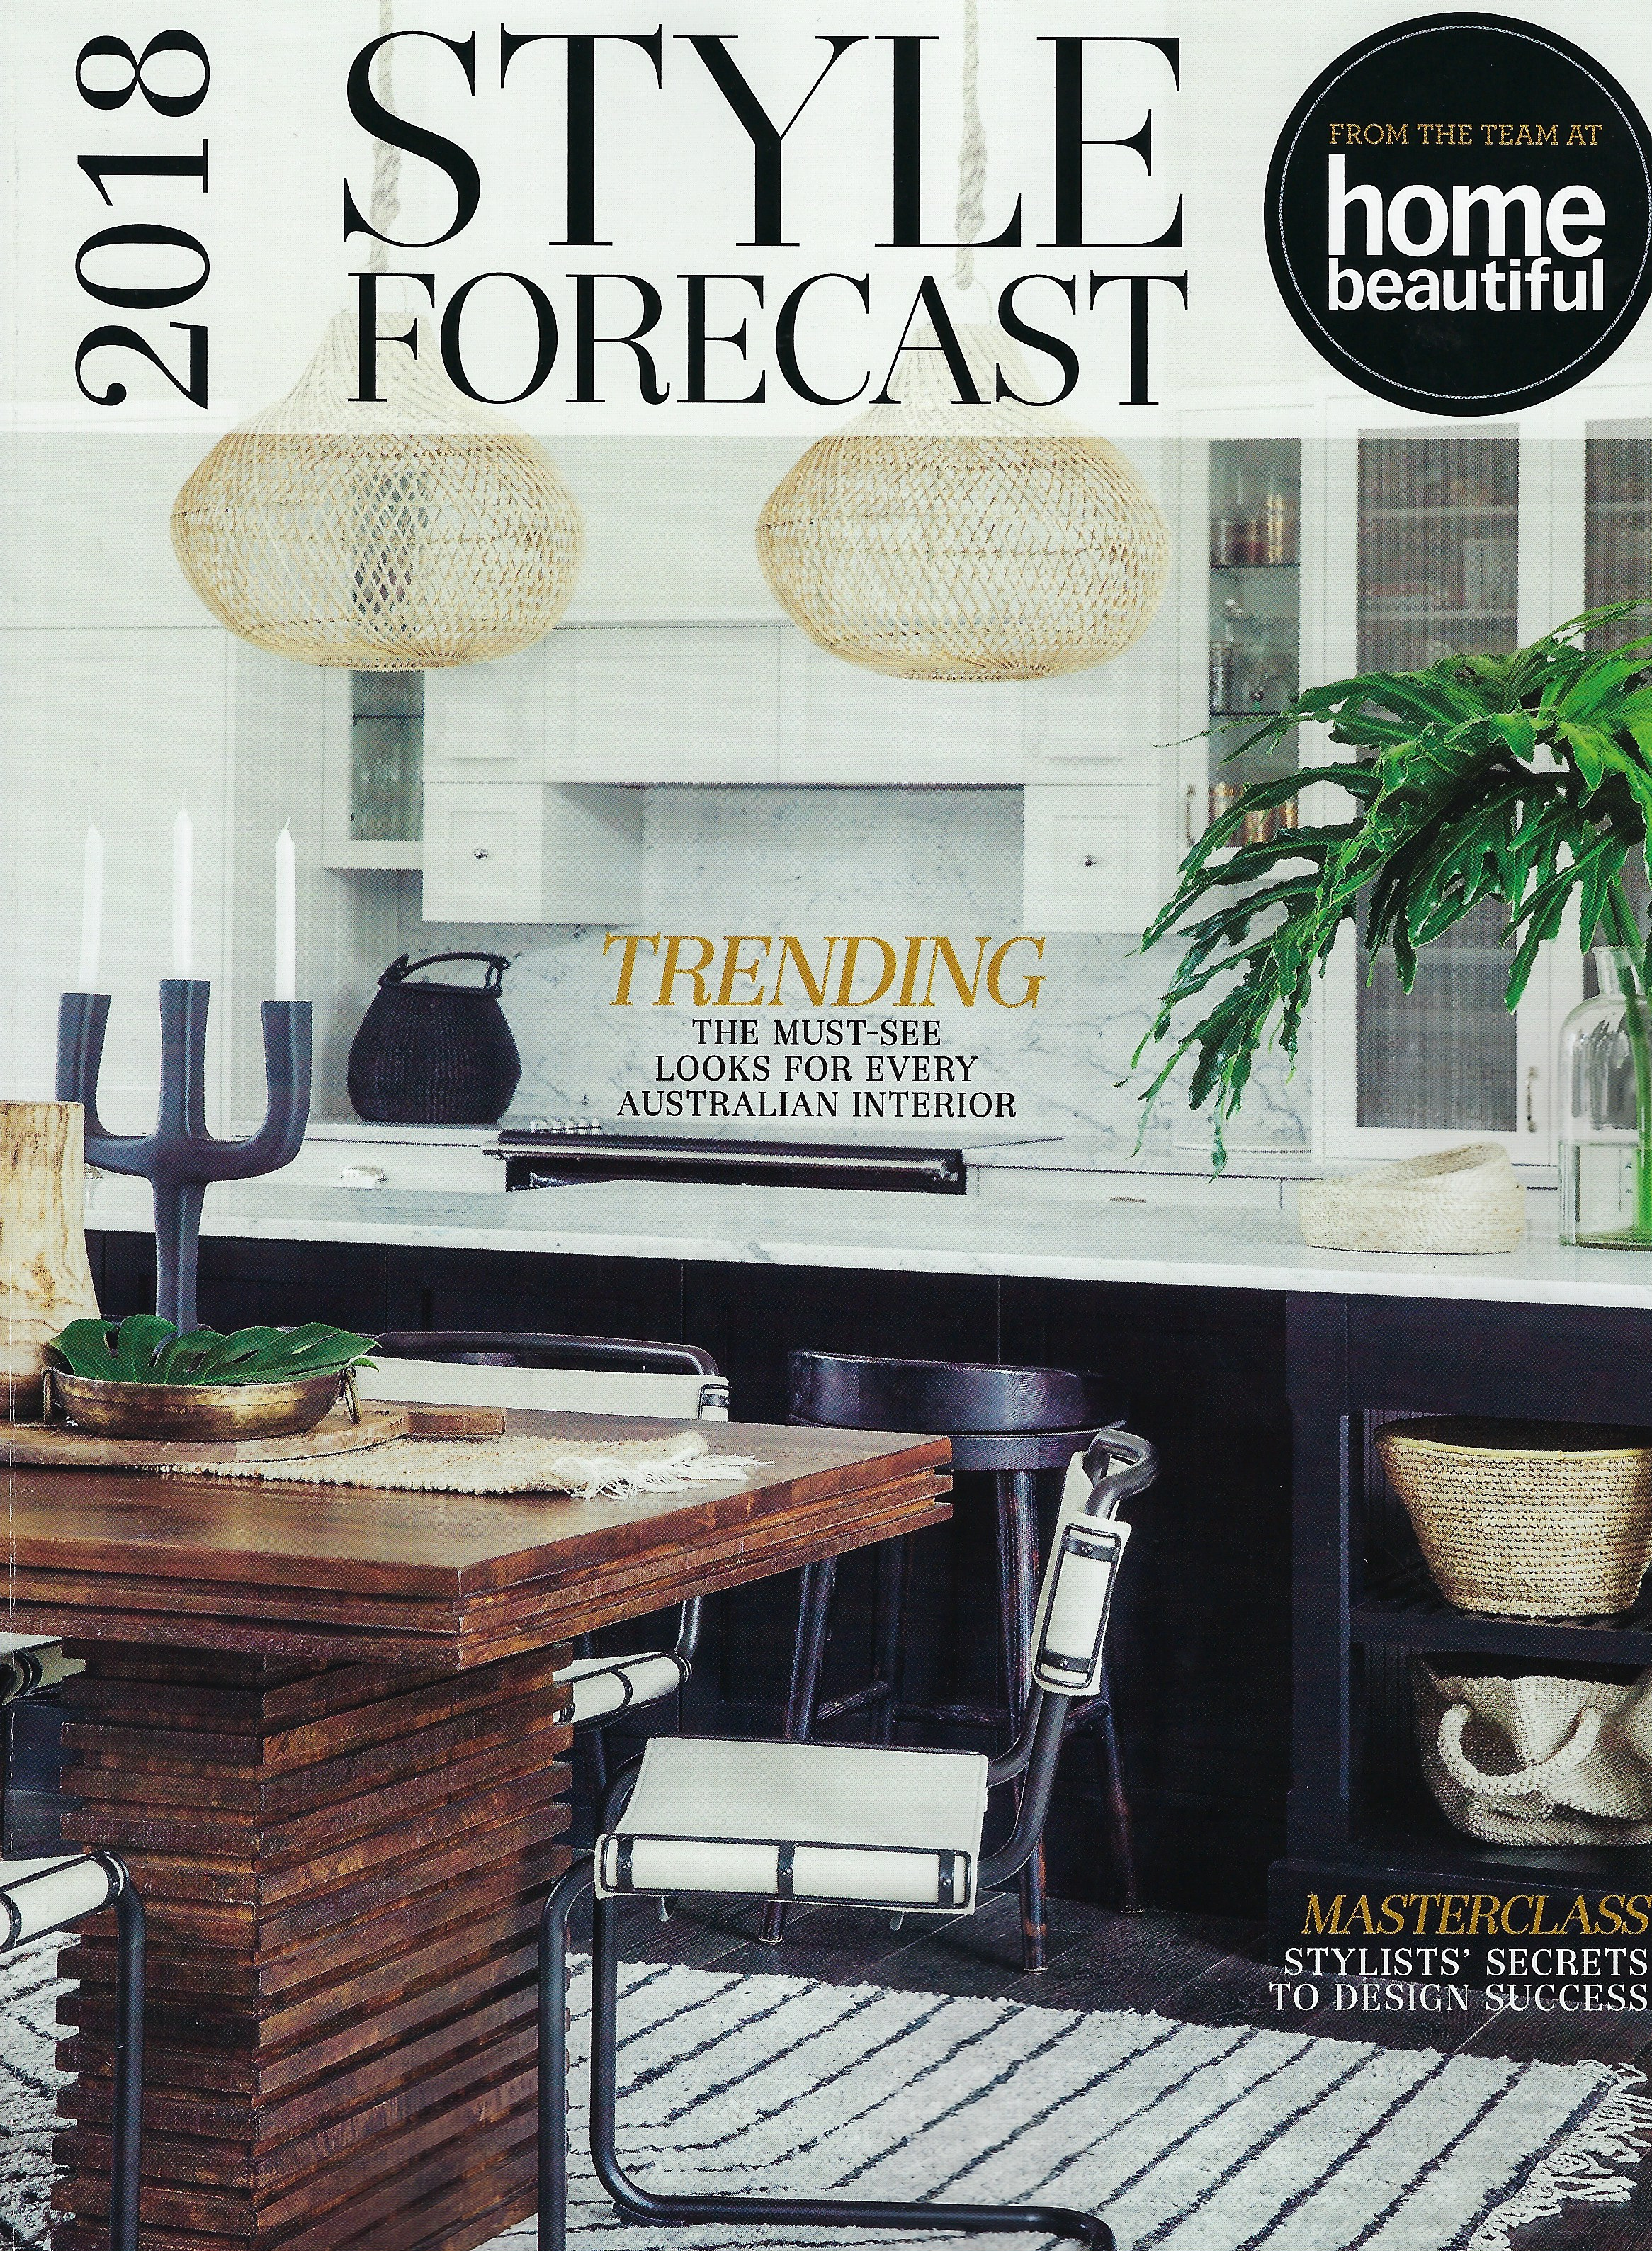 cover-home-beautiful-style-forecast-oct-17-1.jpeg